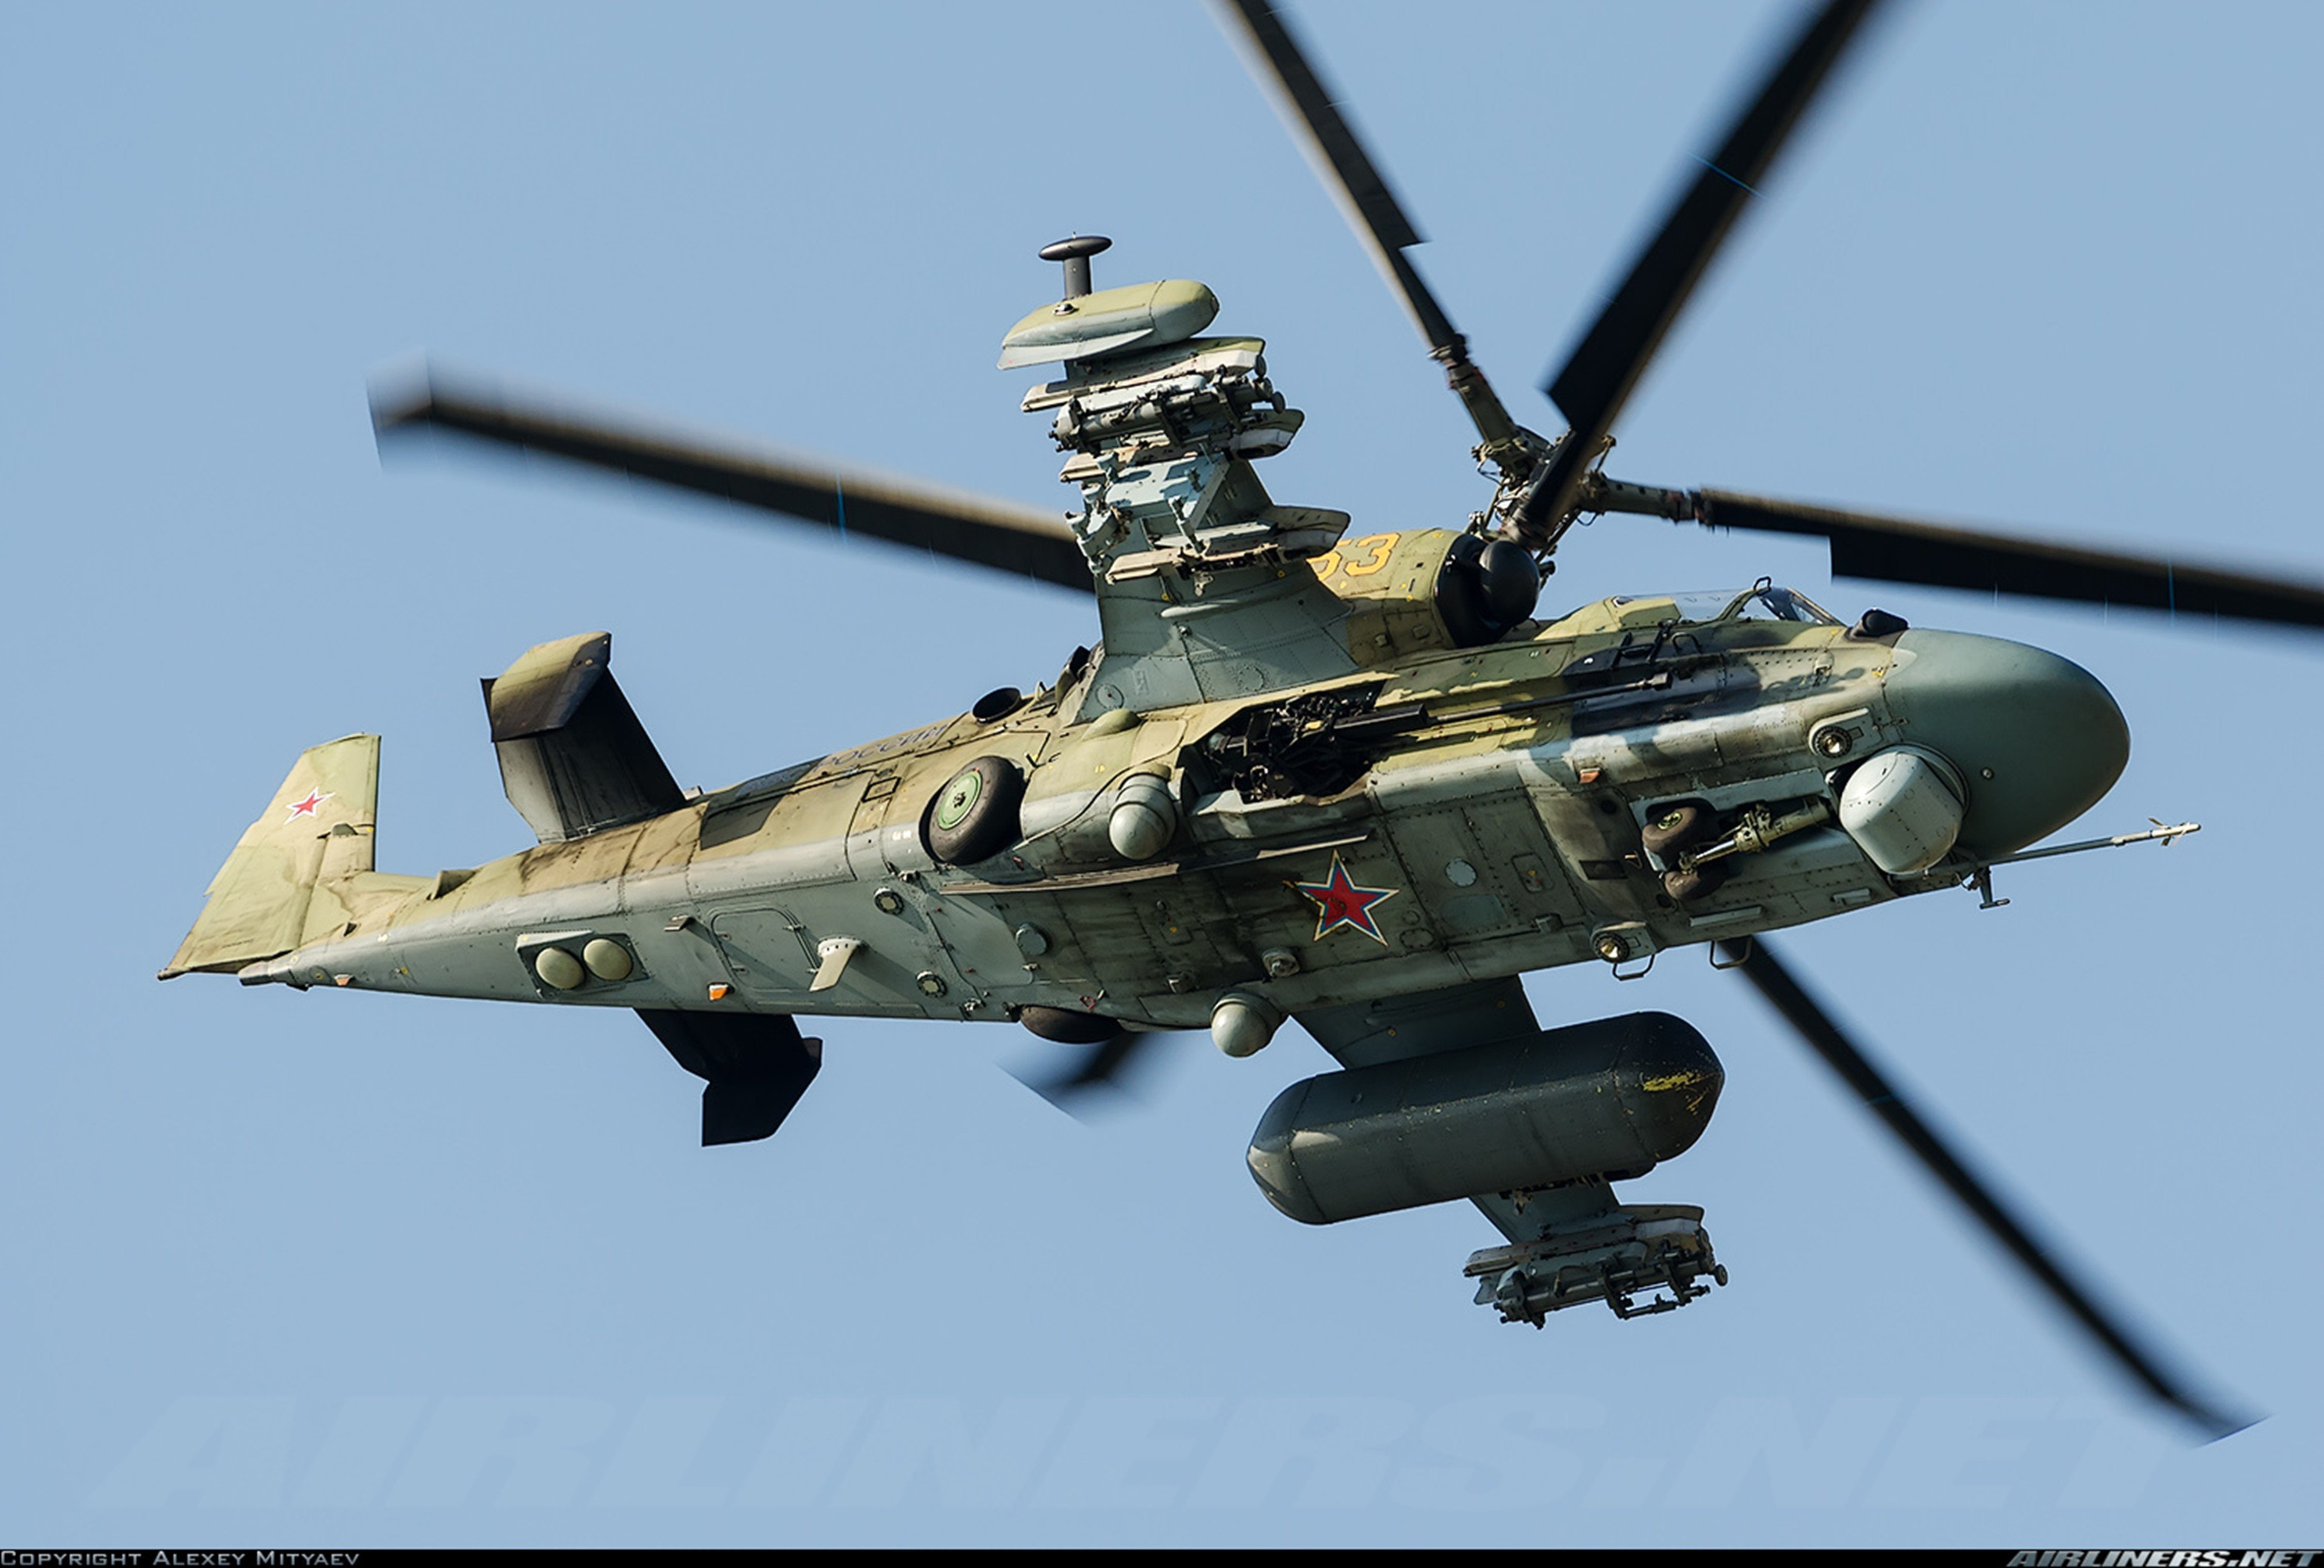 ka 52k helicopter with Kamov Ka 52 Alligator Russian Red Star Russia Helicopter Aircraft Attack Military Army on Russia To Test New Ship Based Helicopters In Syria 612665 additionally ファイル Ka 52 at MAKS 2009 besides Url together with Russia To Supply Egypt With 46 Ka 52k Naval Attack Helicopters 66214 also 3.